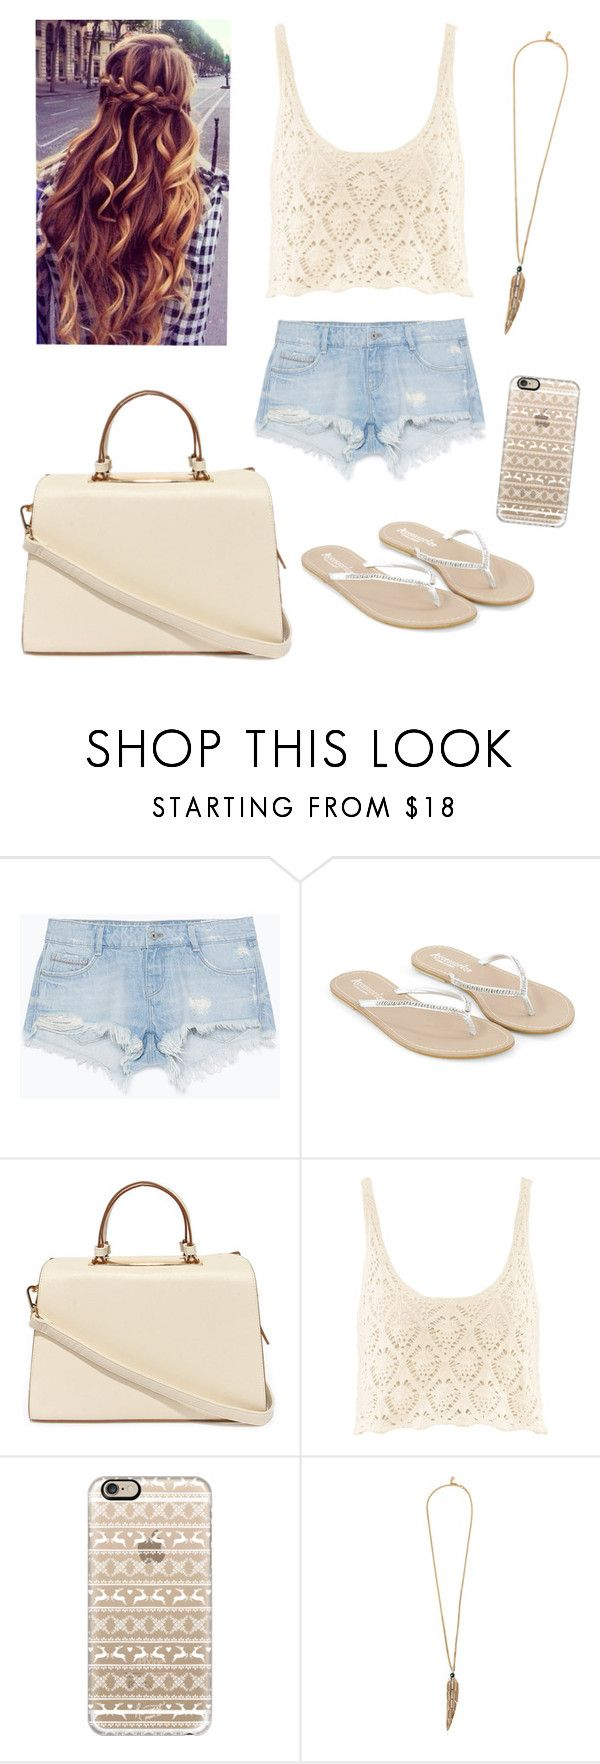 """""""Mondays<☹."""" by elizabethnutt ❤ liked on Polyvore featuring Zara, Accessorize, Nila Anthony, H&M, Casetify, Roberto Cavalli, women's clothing, women, female and woman"""